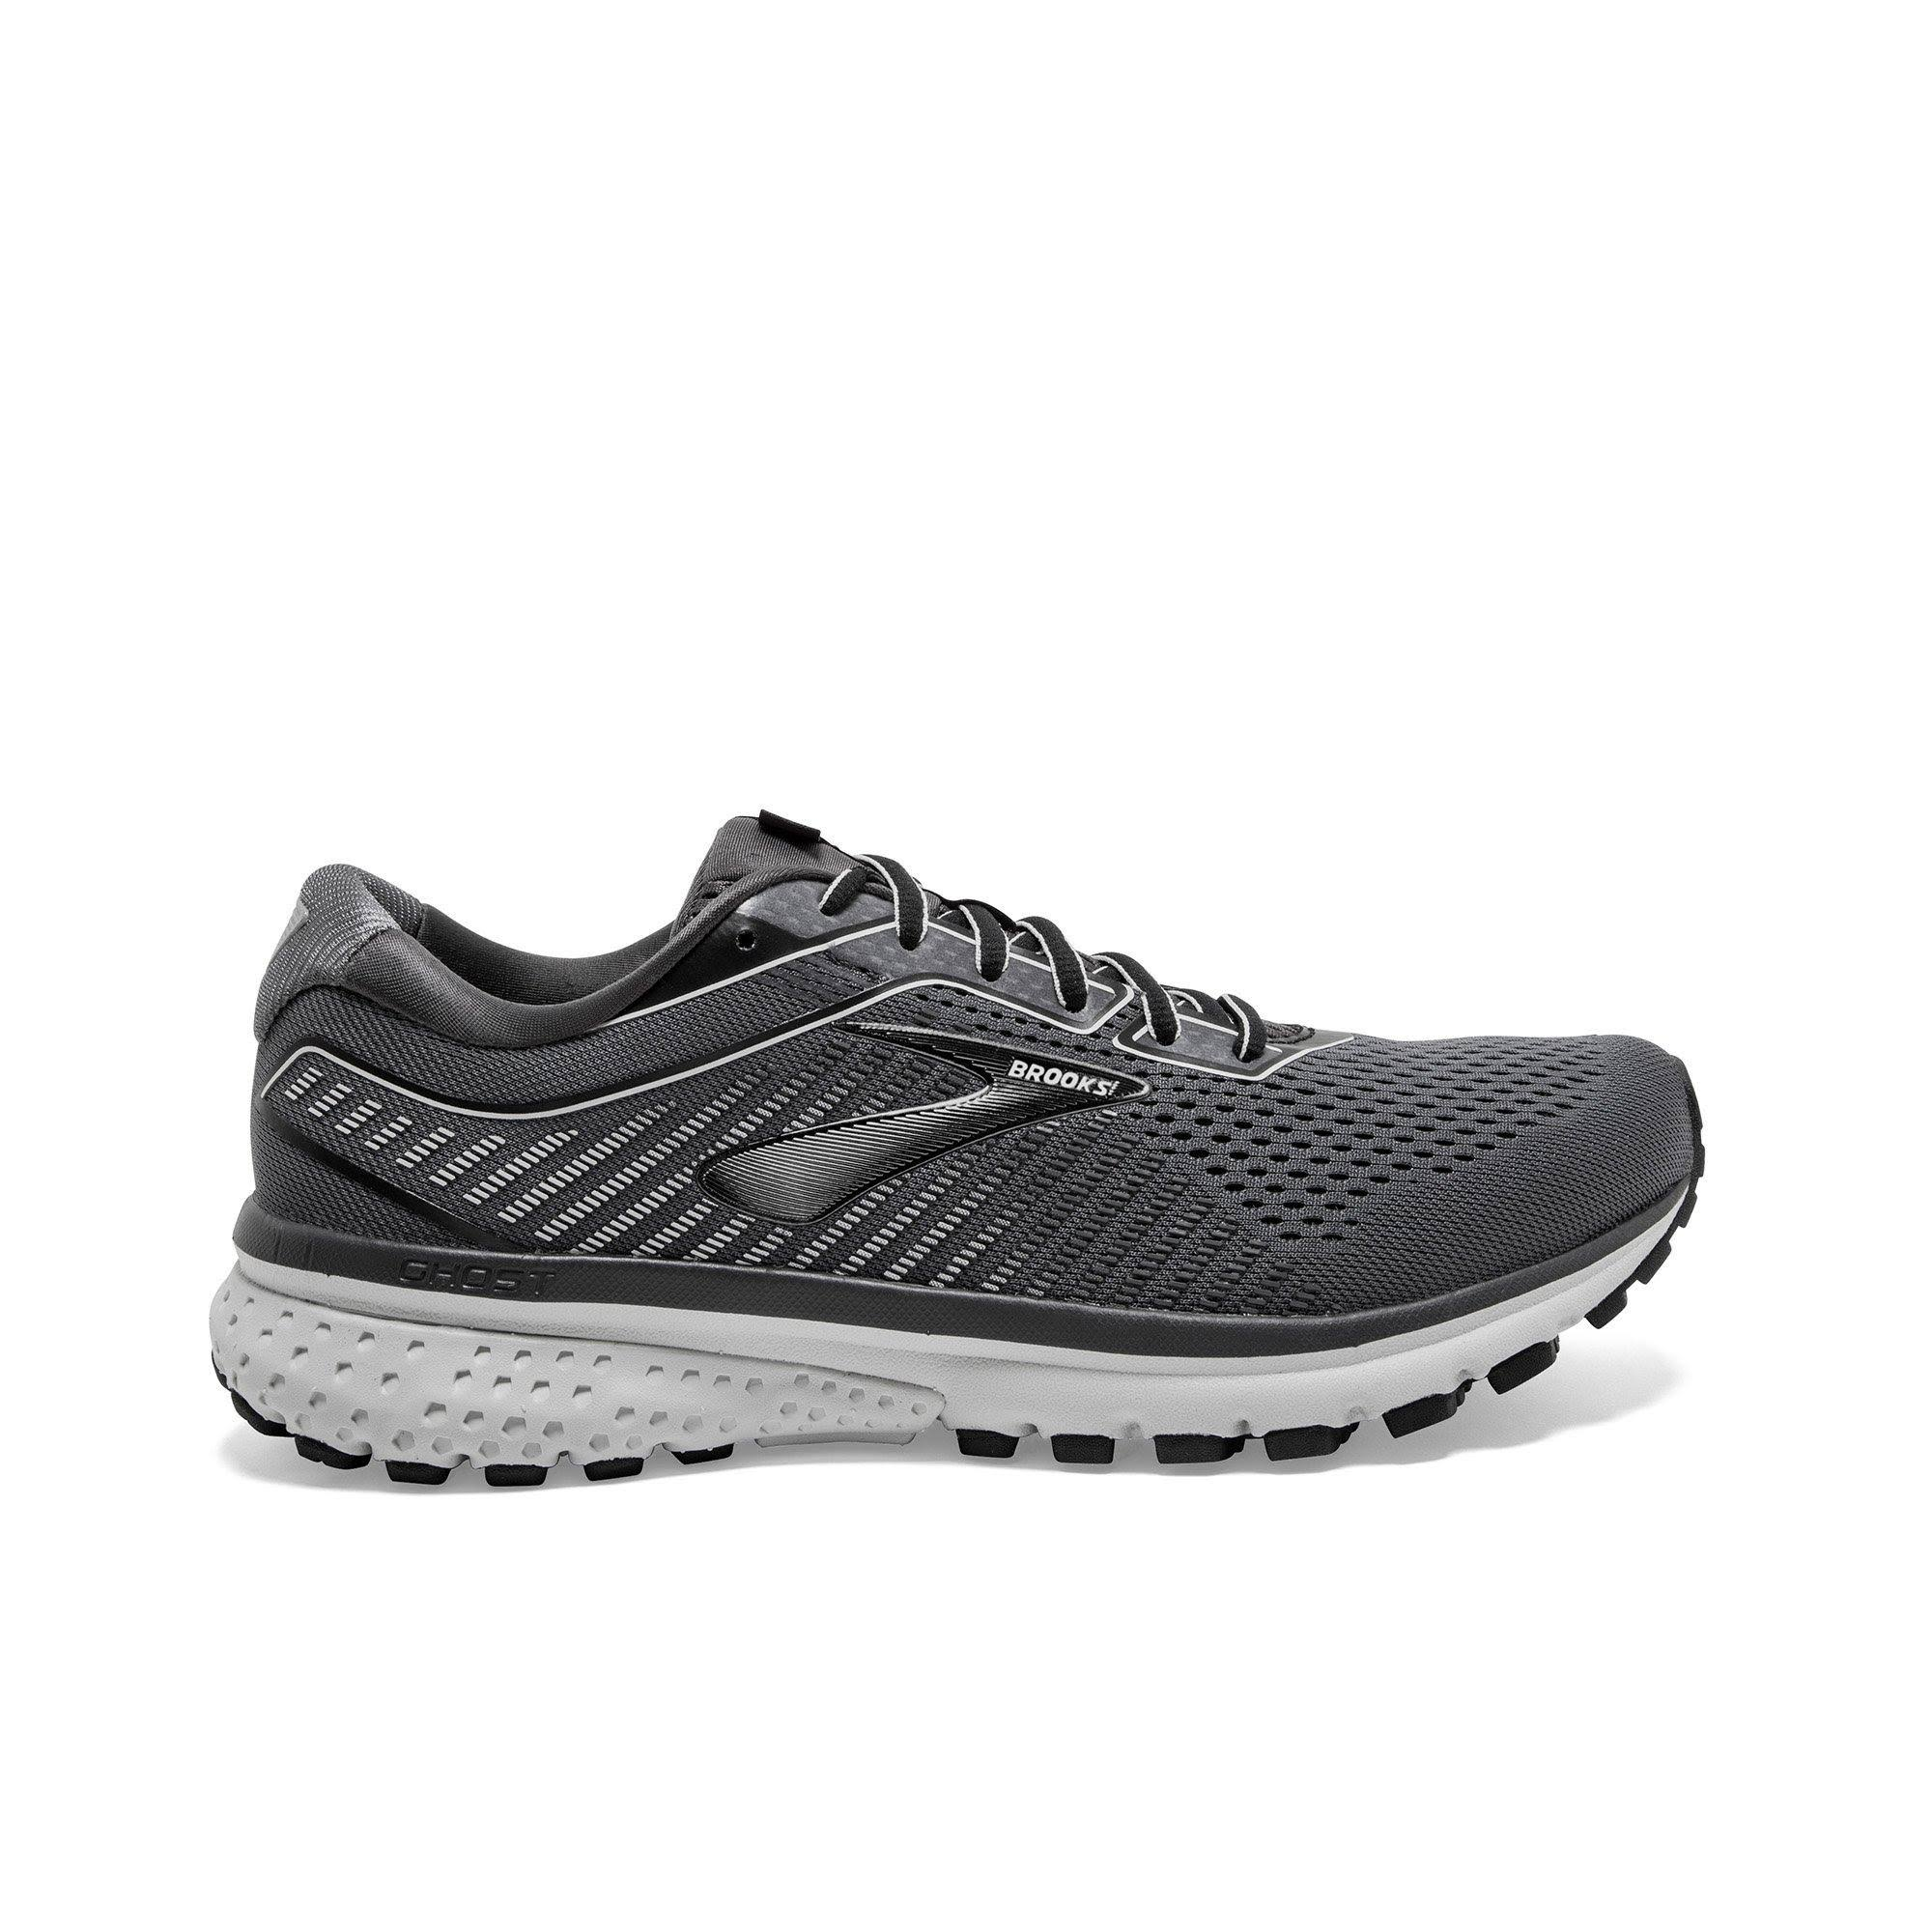 Brooks Men's Ghost 12 Running Shoes, Grey - Size 10.0